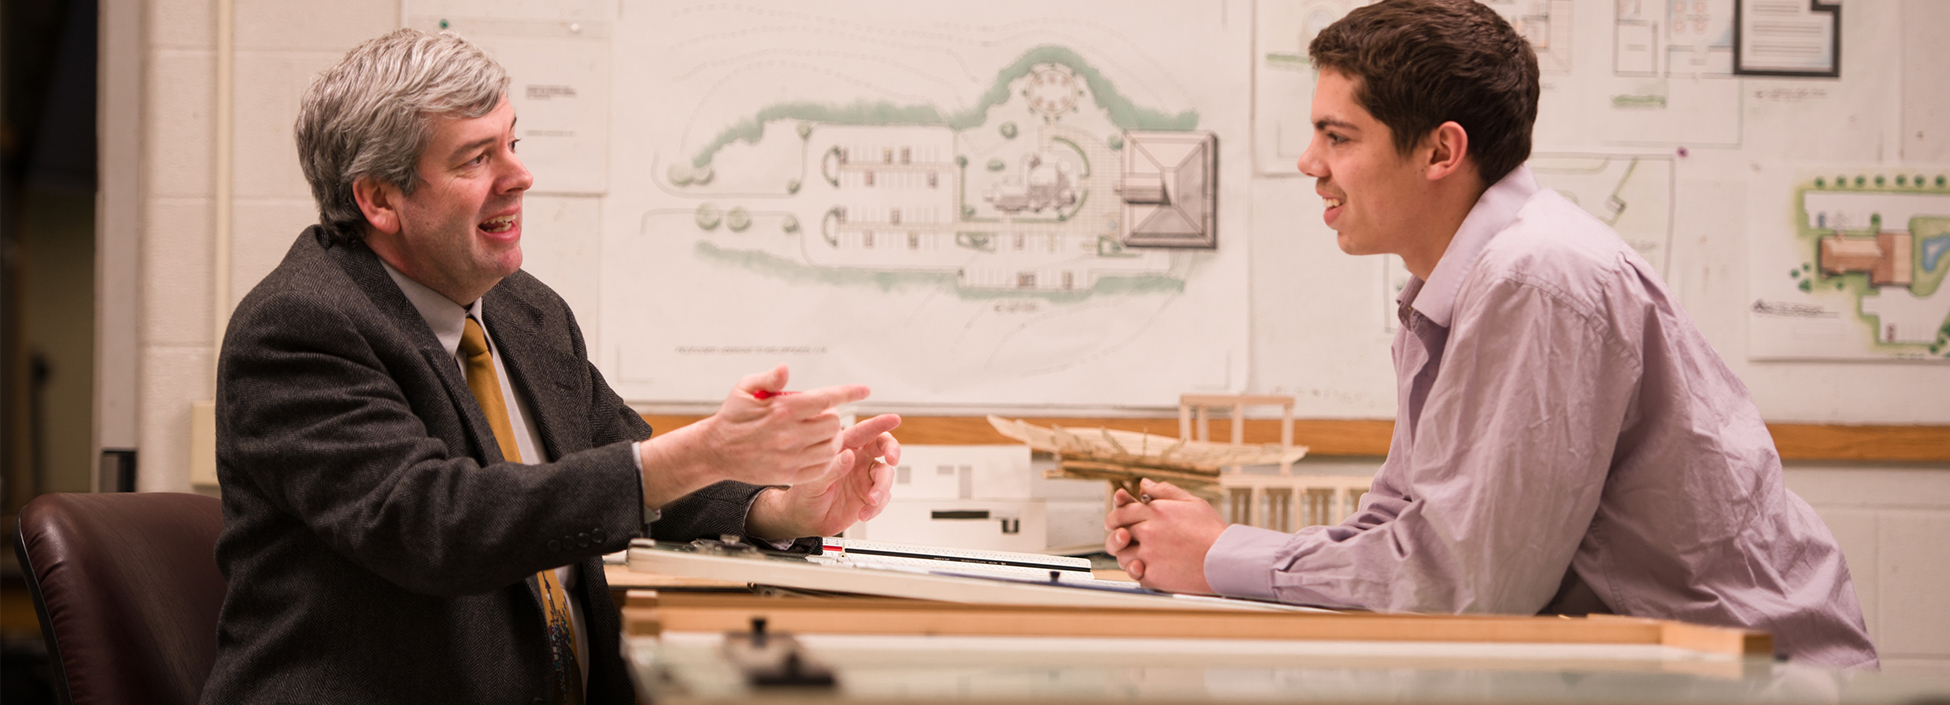 Professor Miller explains a lesson to a student, architectural engineering